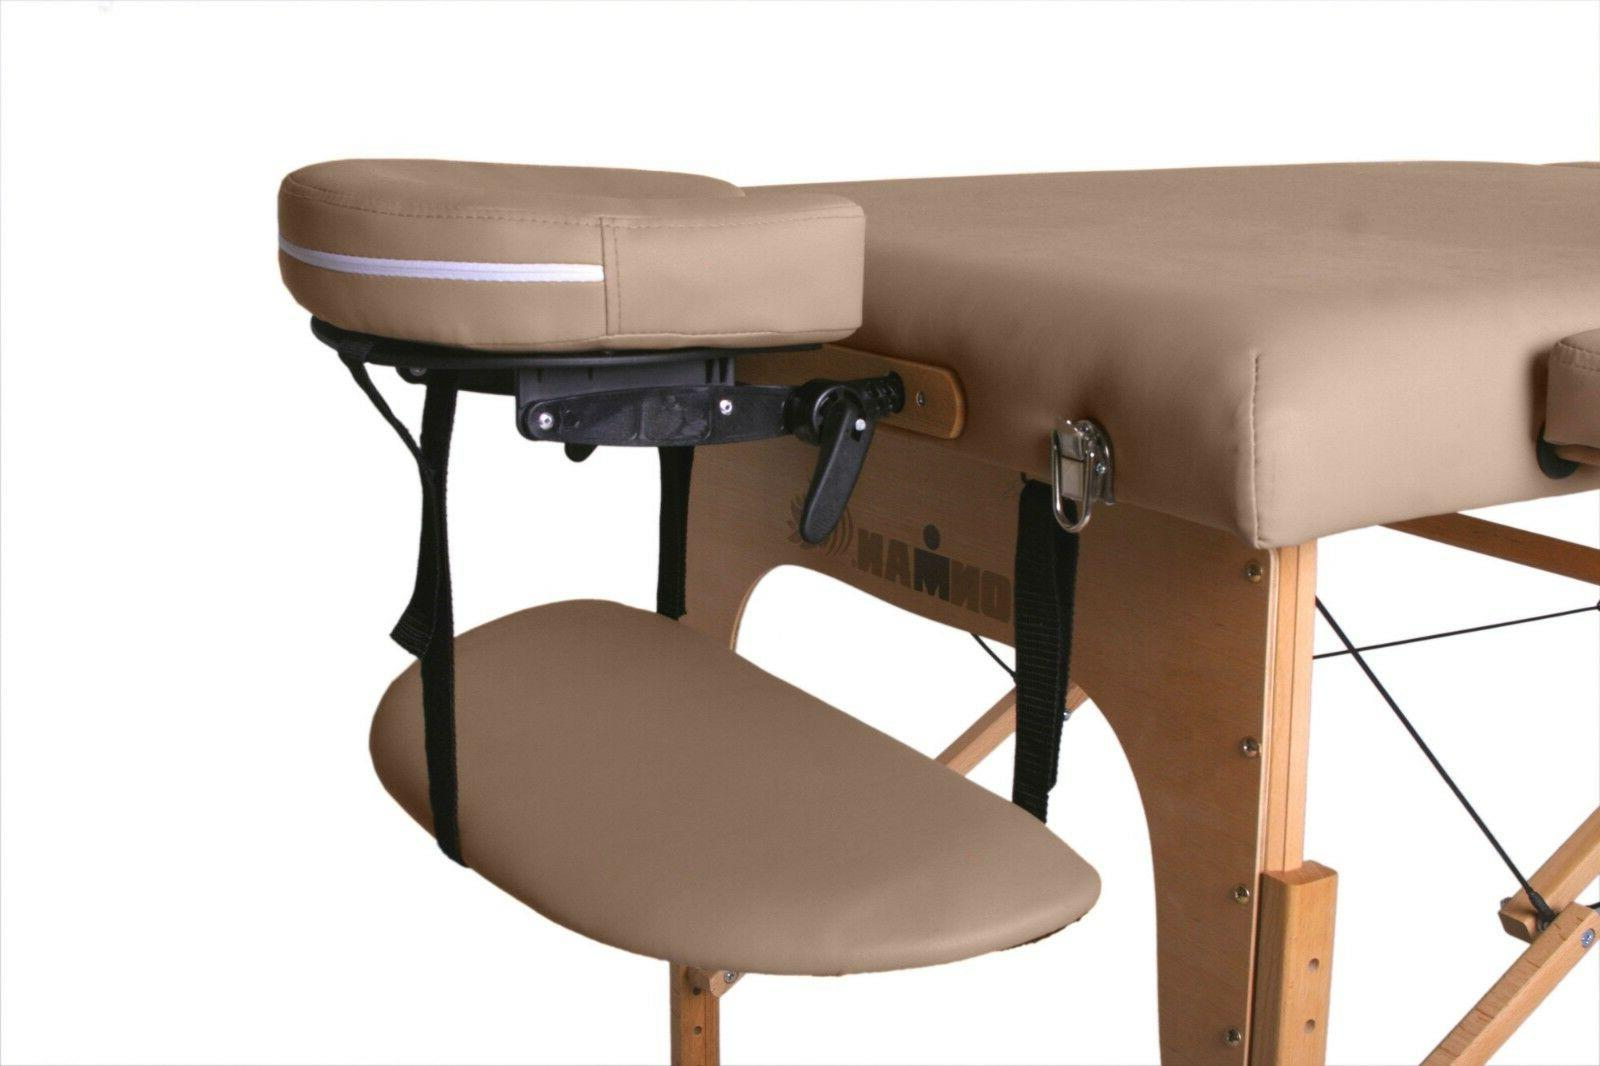 Portable Massage Table Ironman Foldable Adjustable Santa Cruz Deluxe Carry